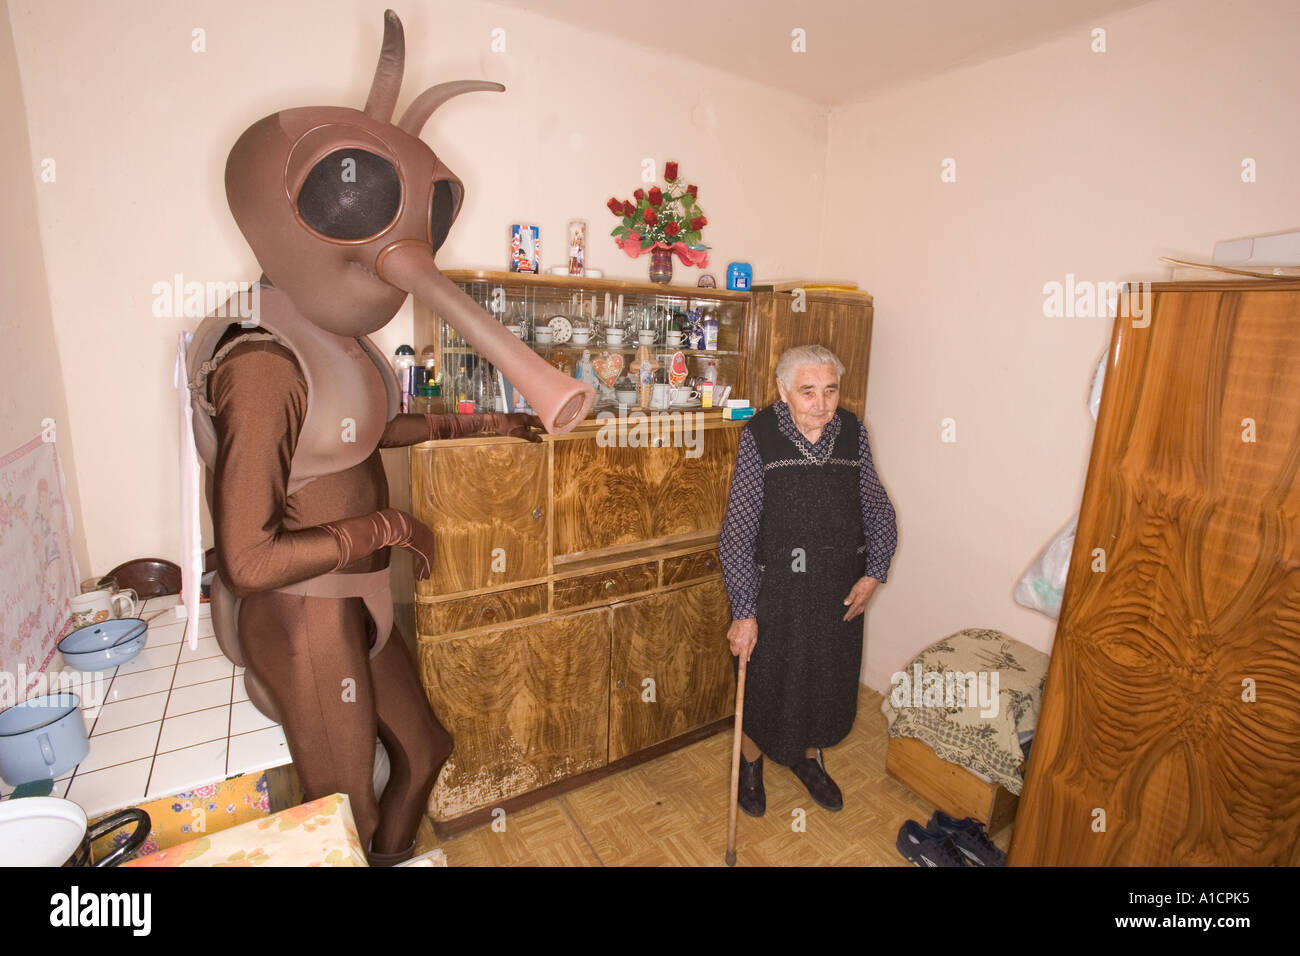 Old woman and a tall man in mosquito costume in an old kitchen - Stock Image